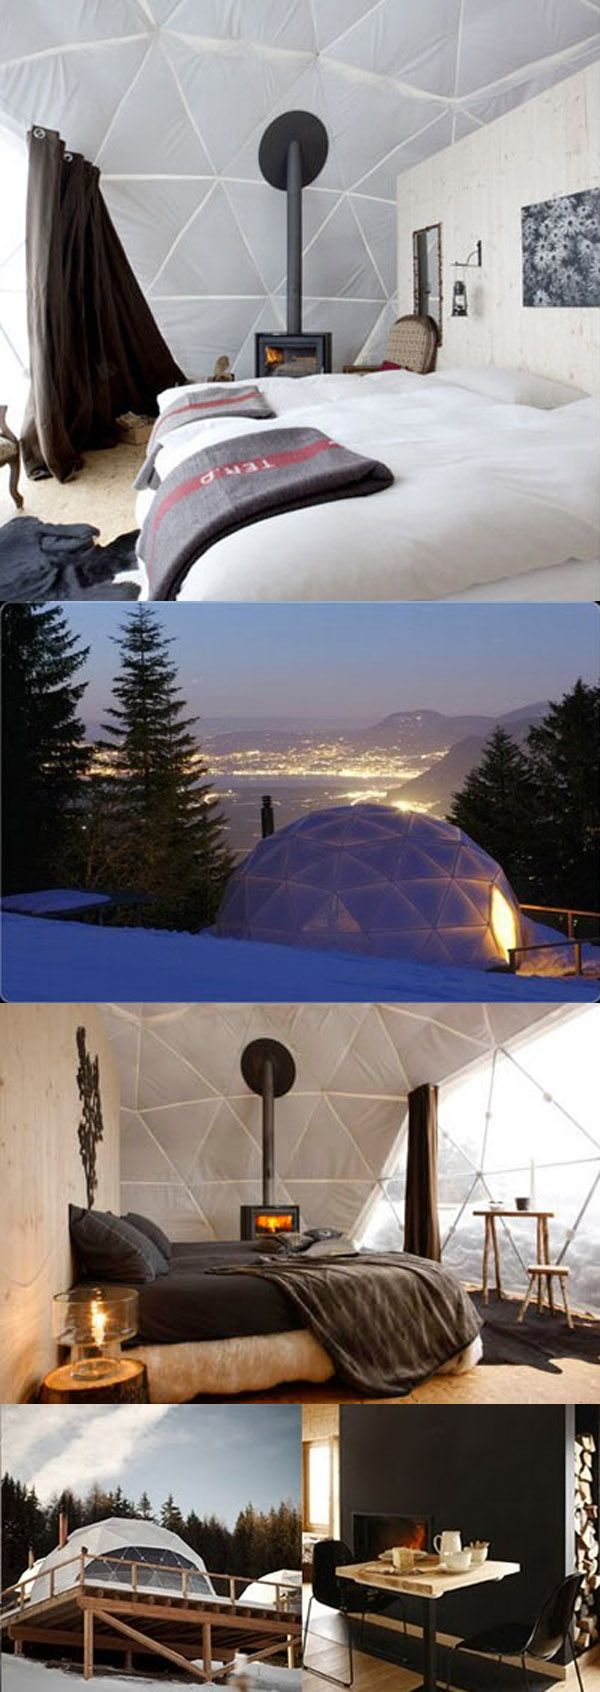 Ok, that's pretty cool.Hot Chocolate, Wanna Stay, Honeymoons Spots, Synthetic Igloo, Stylish Hotels, Nice Places, Whitepod Resorts, Alps Suisse, Destinations Honeymoons